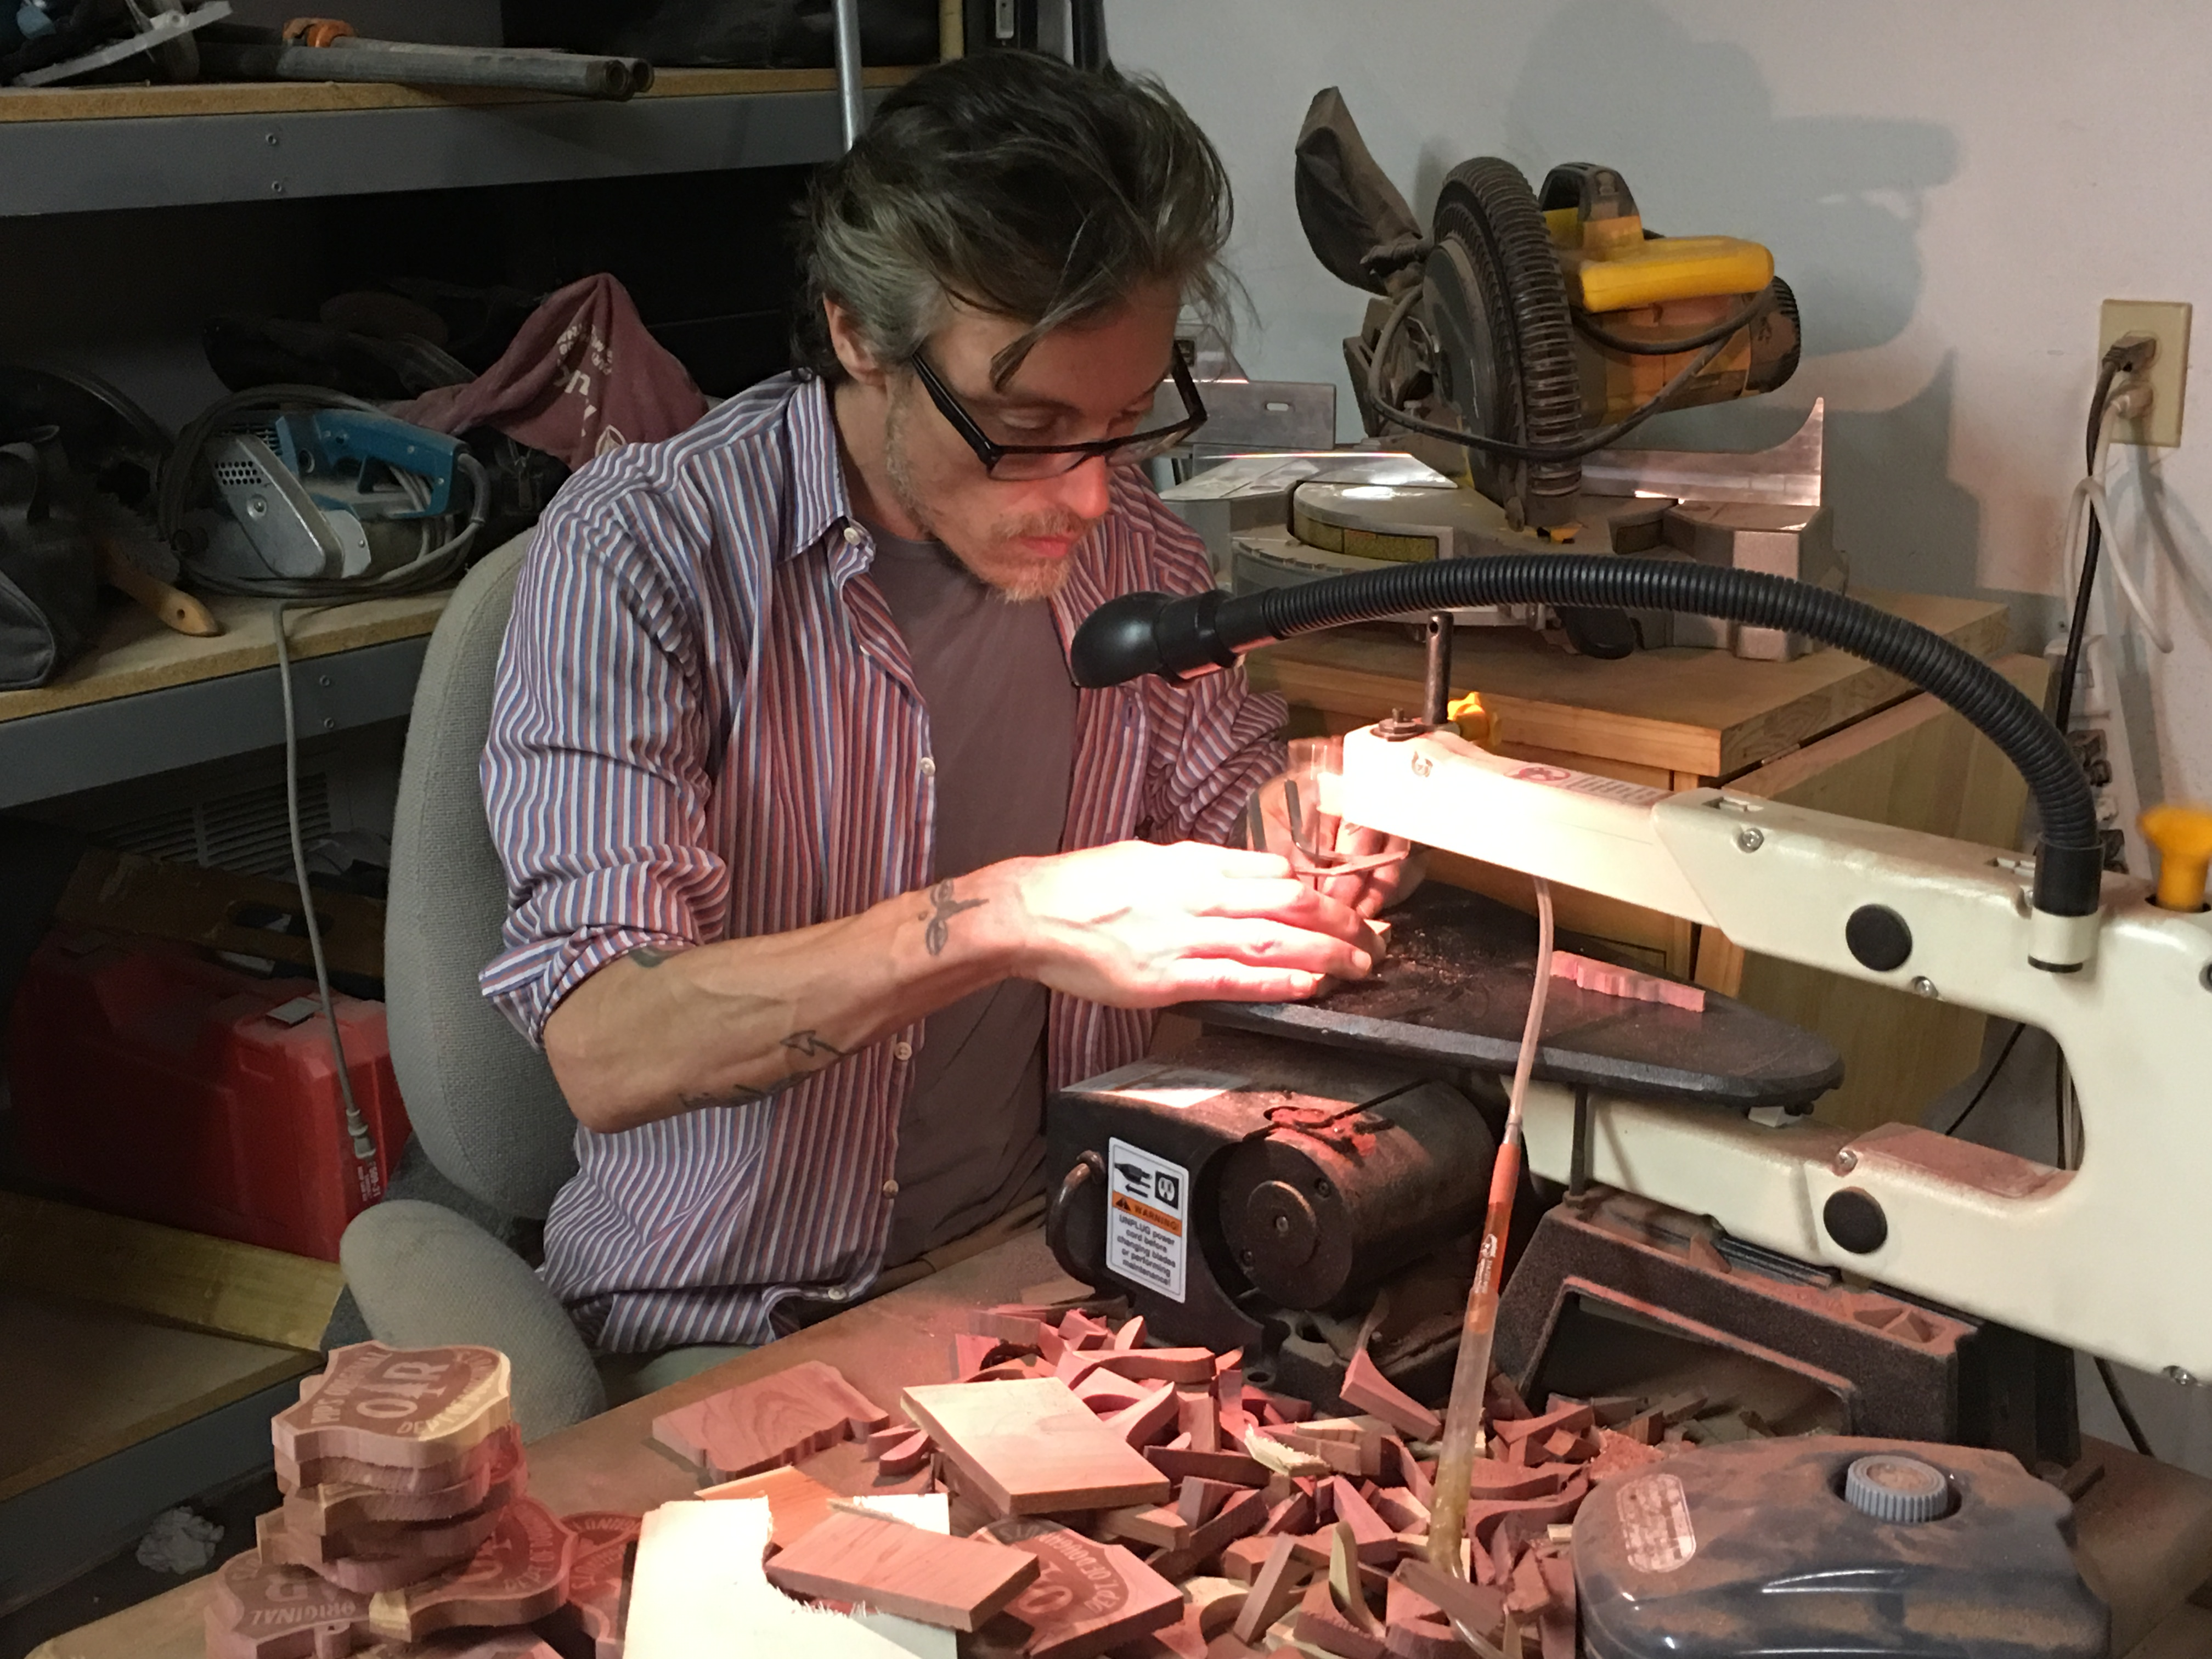 Lawrence resident Shine Adams founded Sun Cedar to help people down on their luck. He is pictured here using a scroll saw, one of the company's pieces of carpentry equipment. (Photo by Dan Margolies)